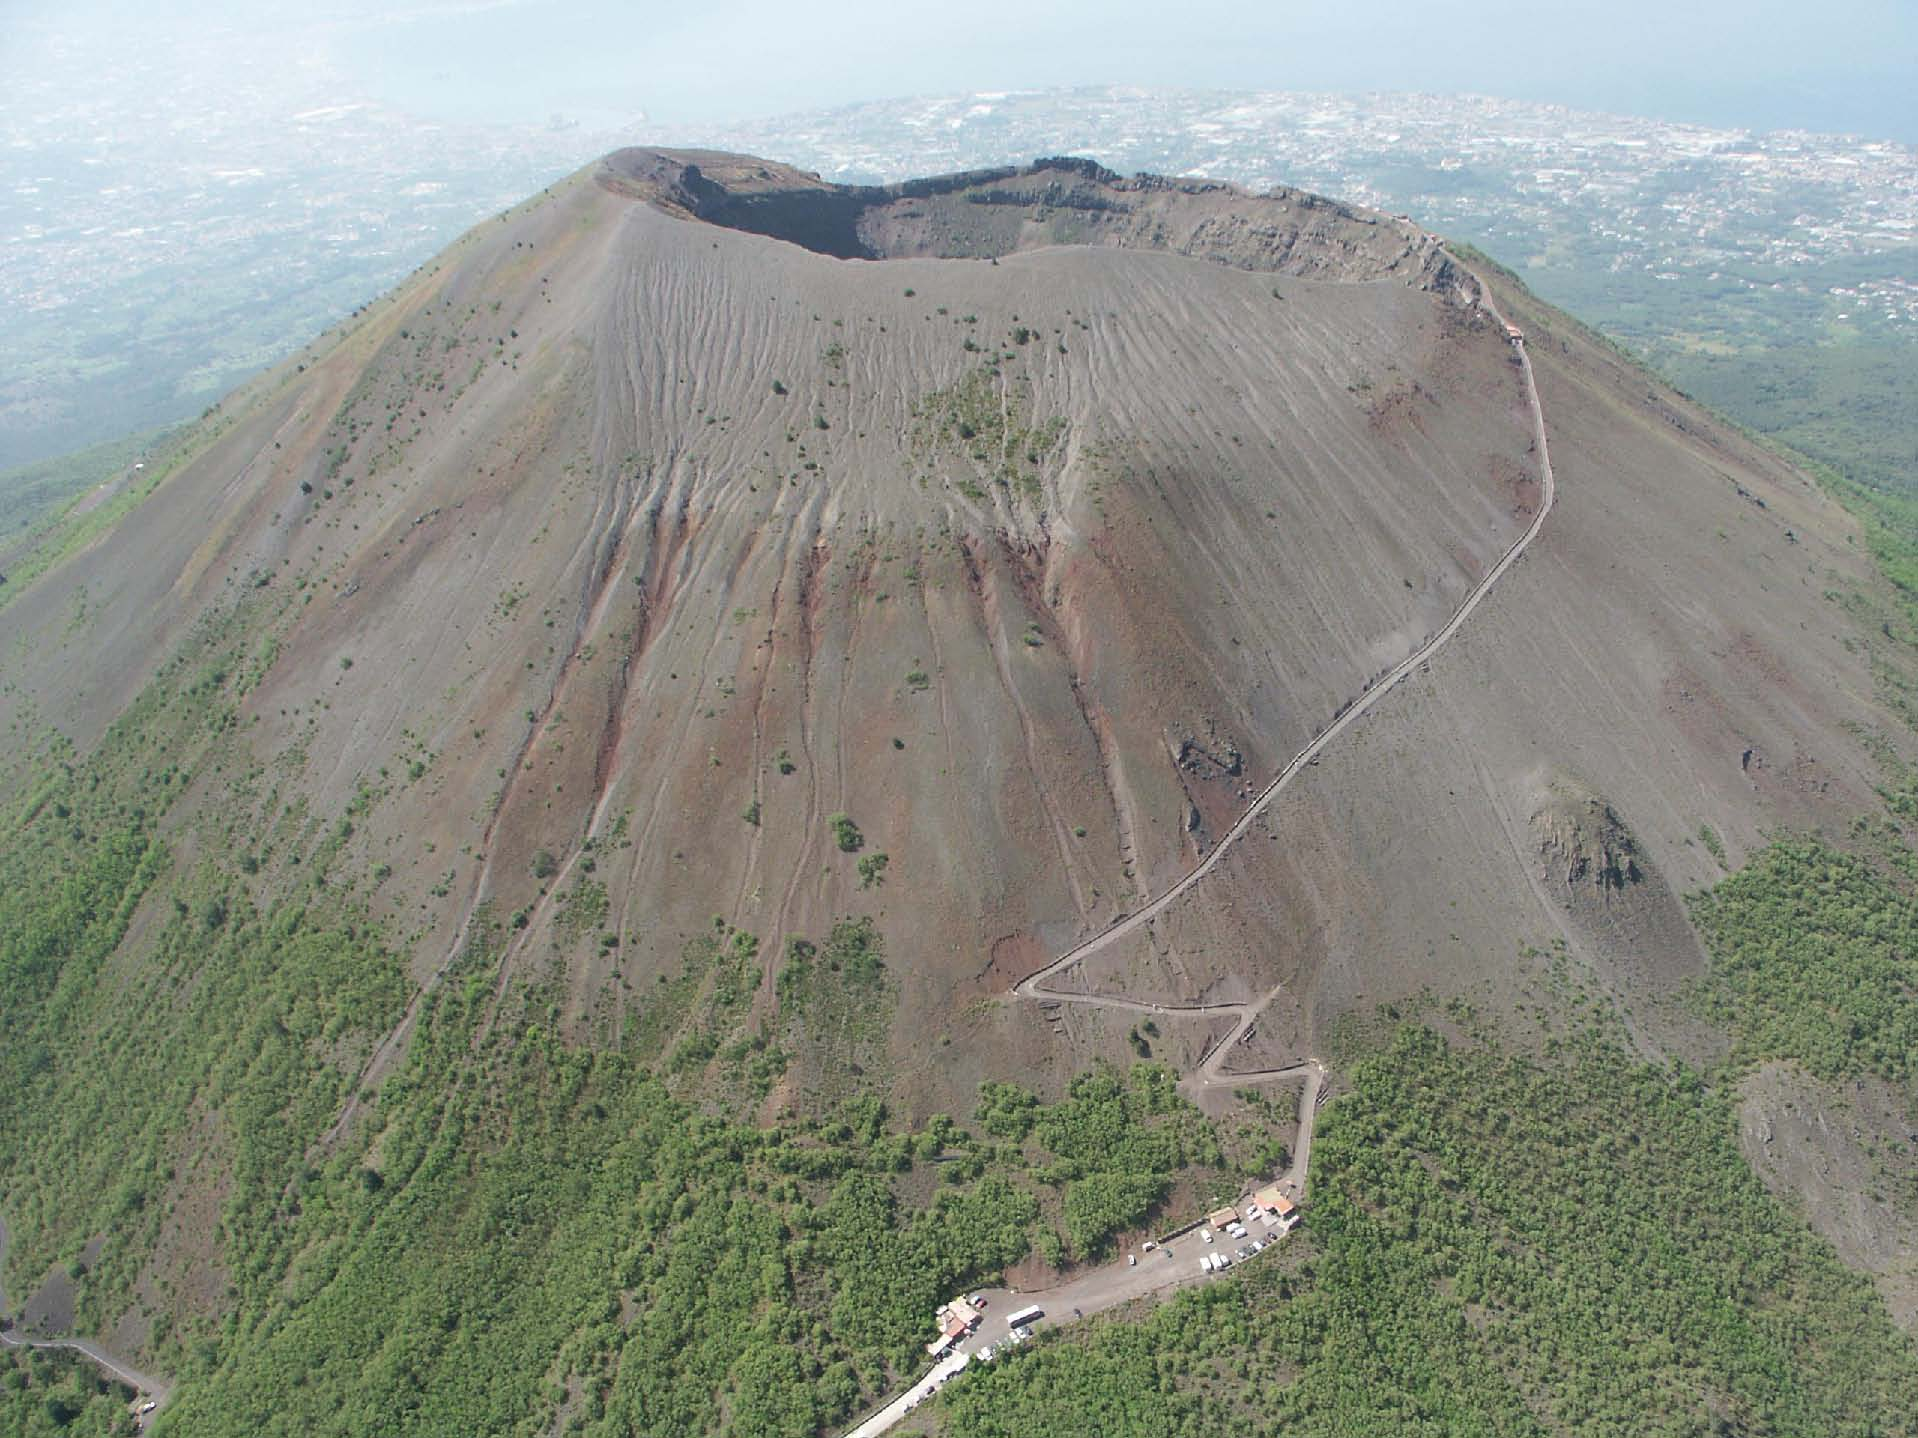 Vesuvius - the summit of this majestic volcano is awe-inspiring